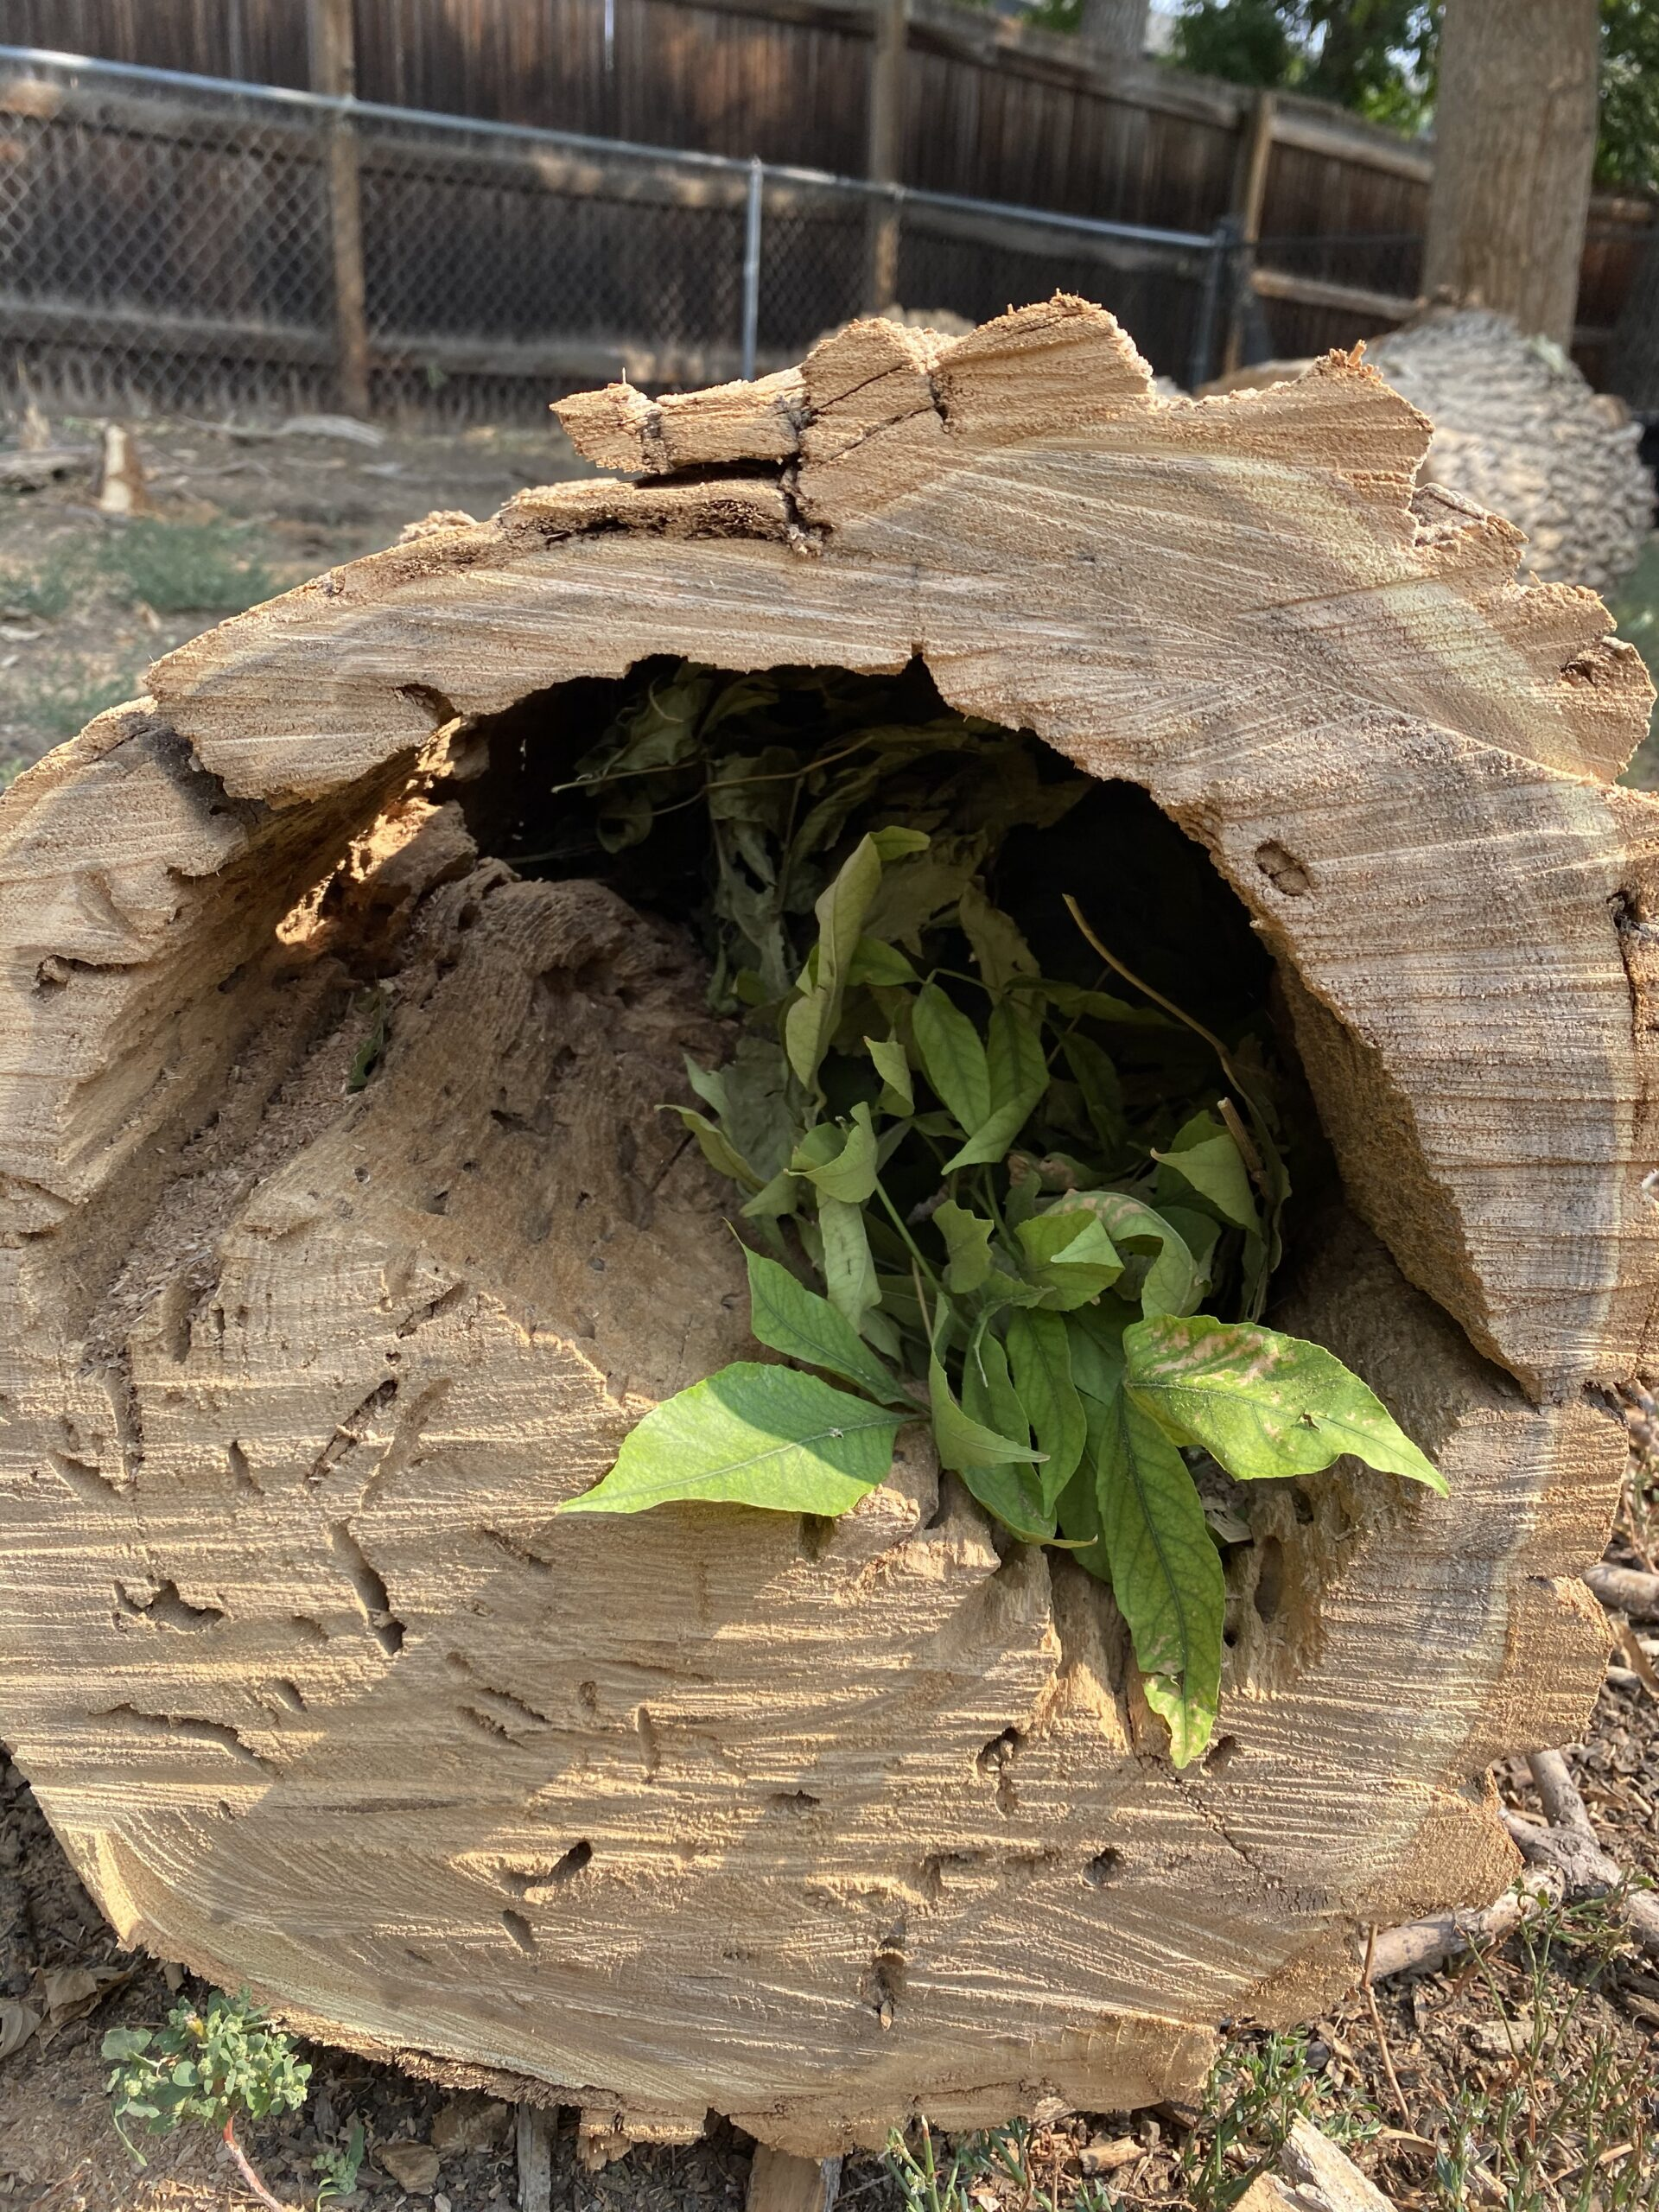 This is a cross section of the trunk. A plant was growing INSIDE the half of the dead tree that the termites had already eaten, while the wood in the other half of the trunk looks healthy.